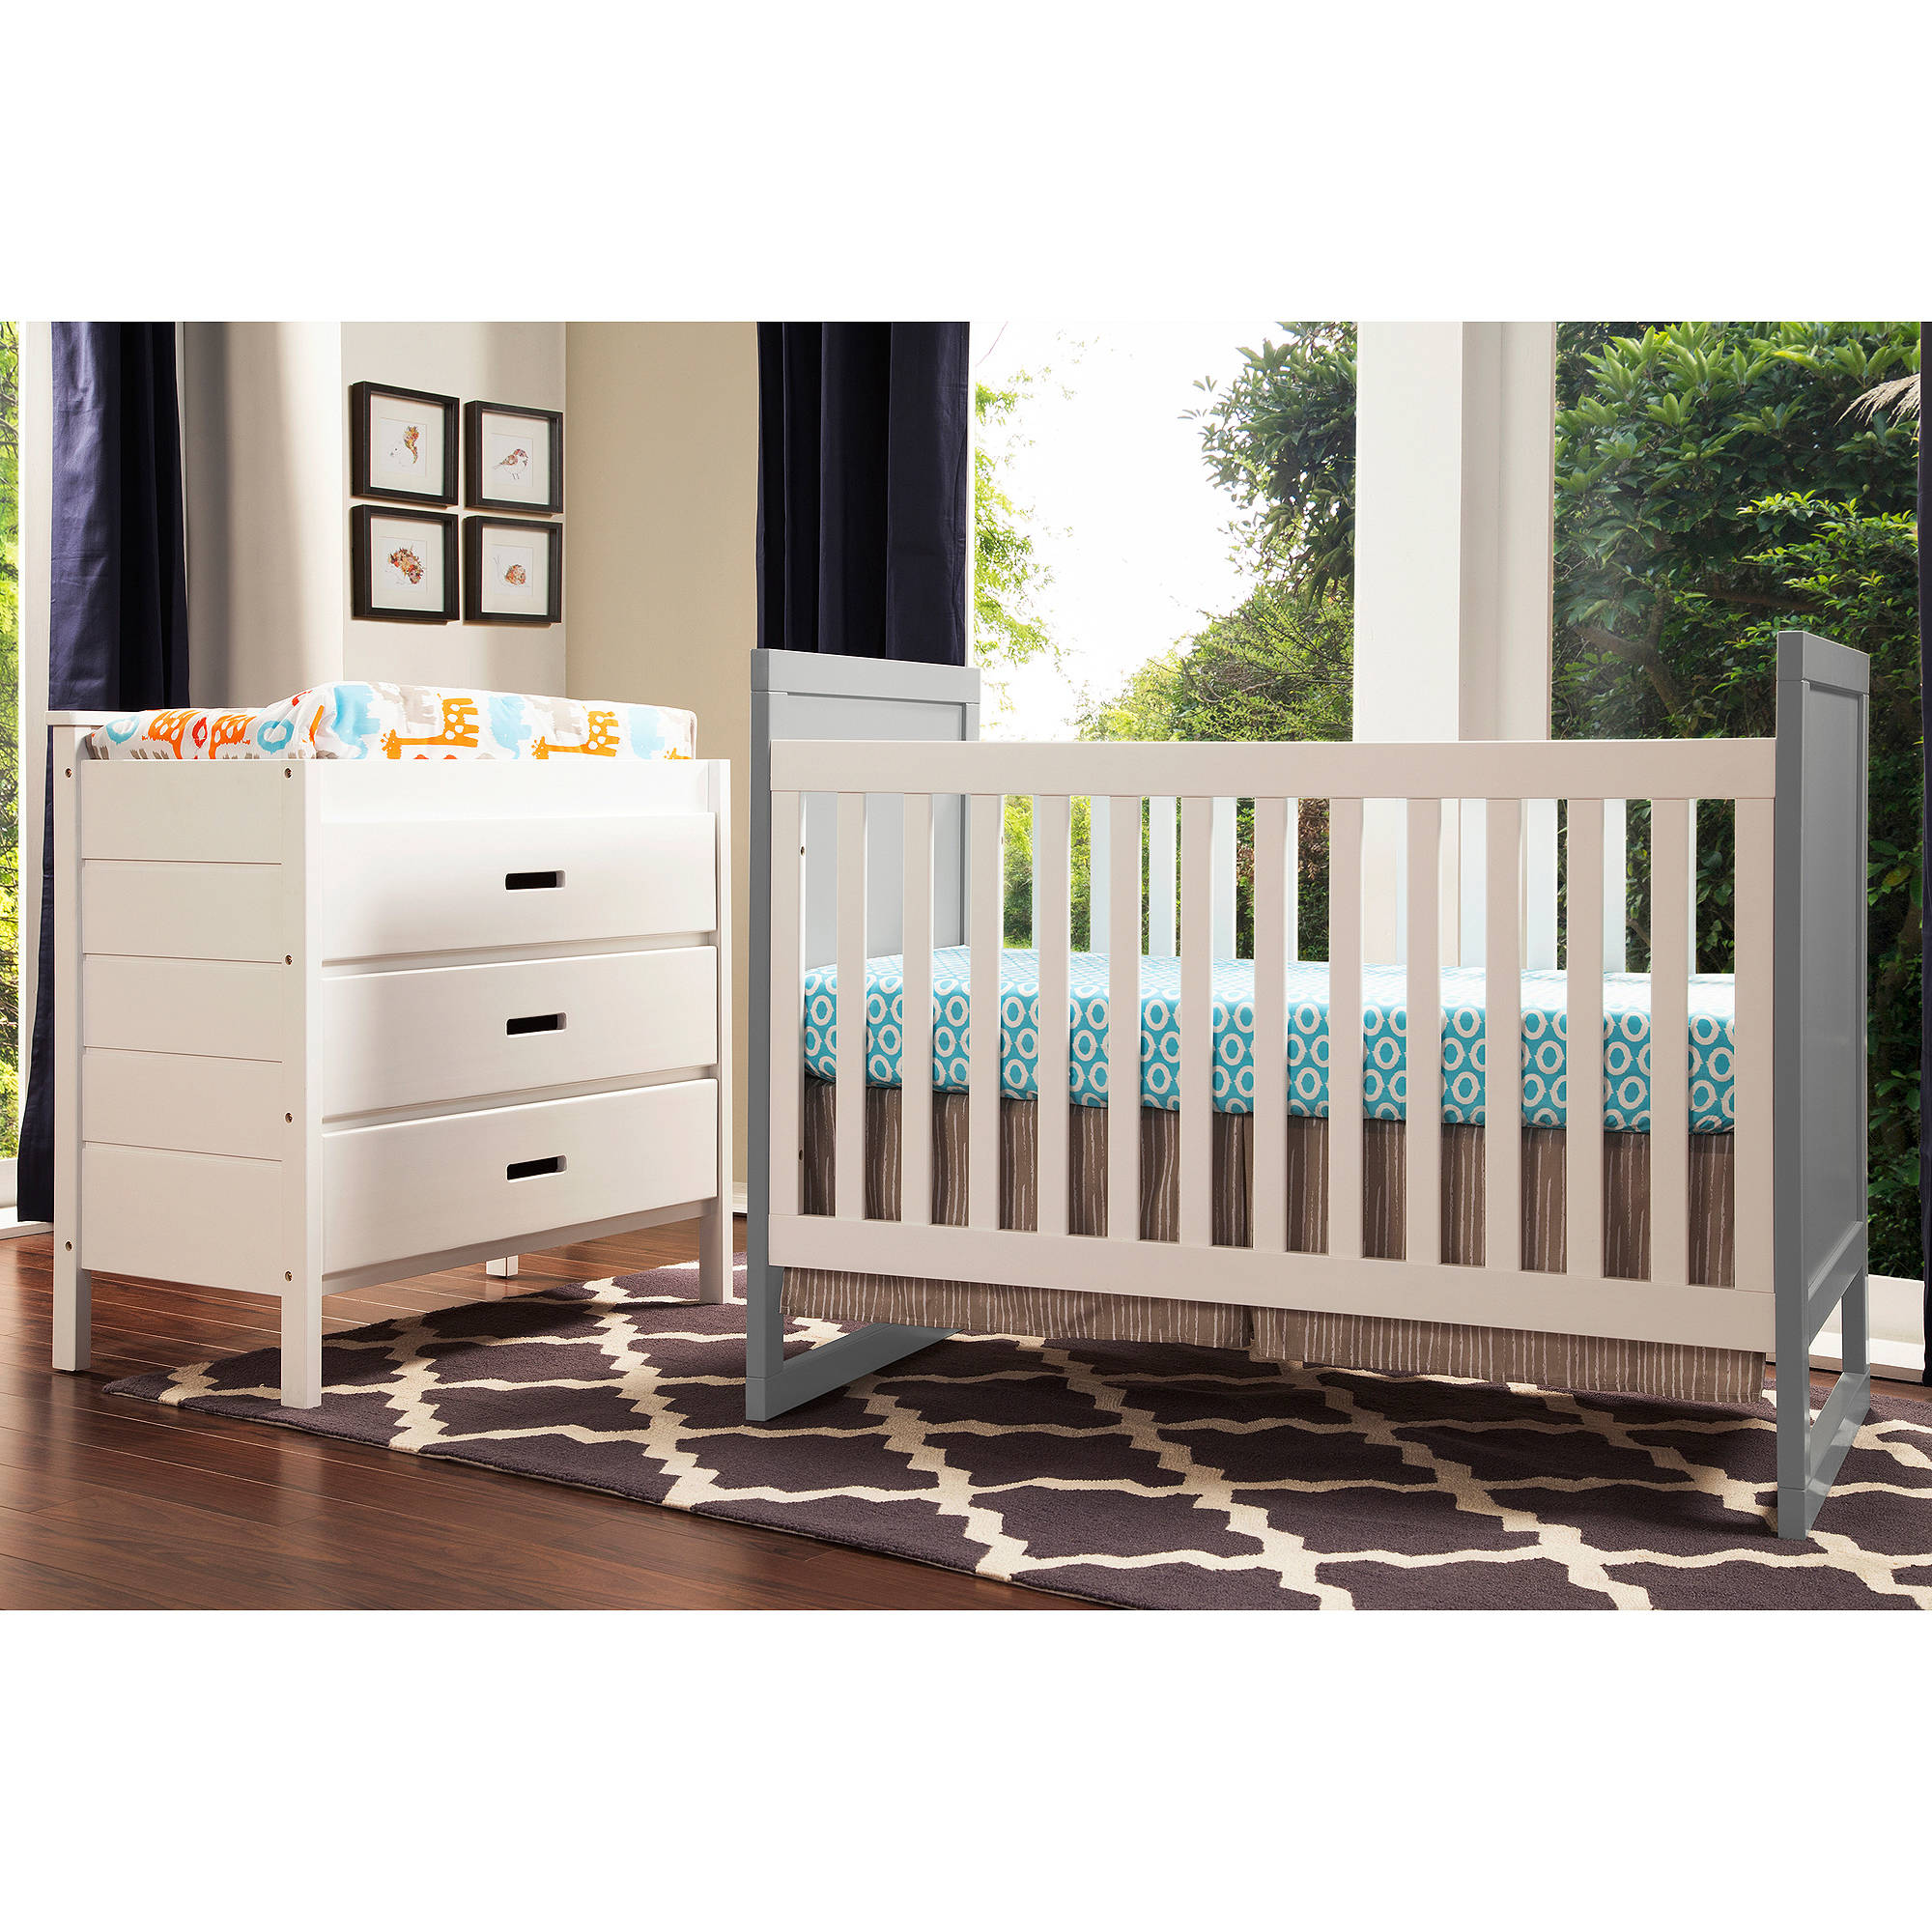 Ava 4 Piece Nursery Set, Grey   Walmart.com